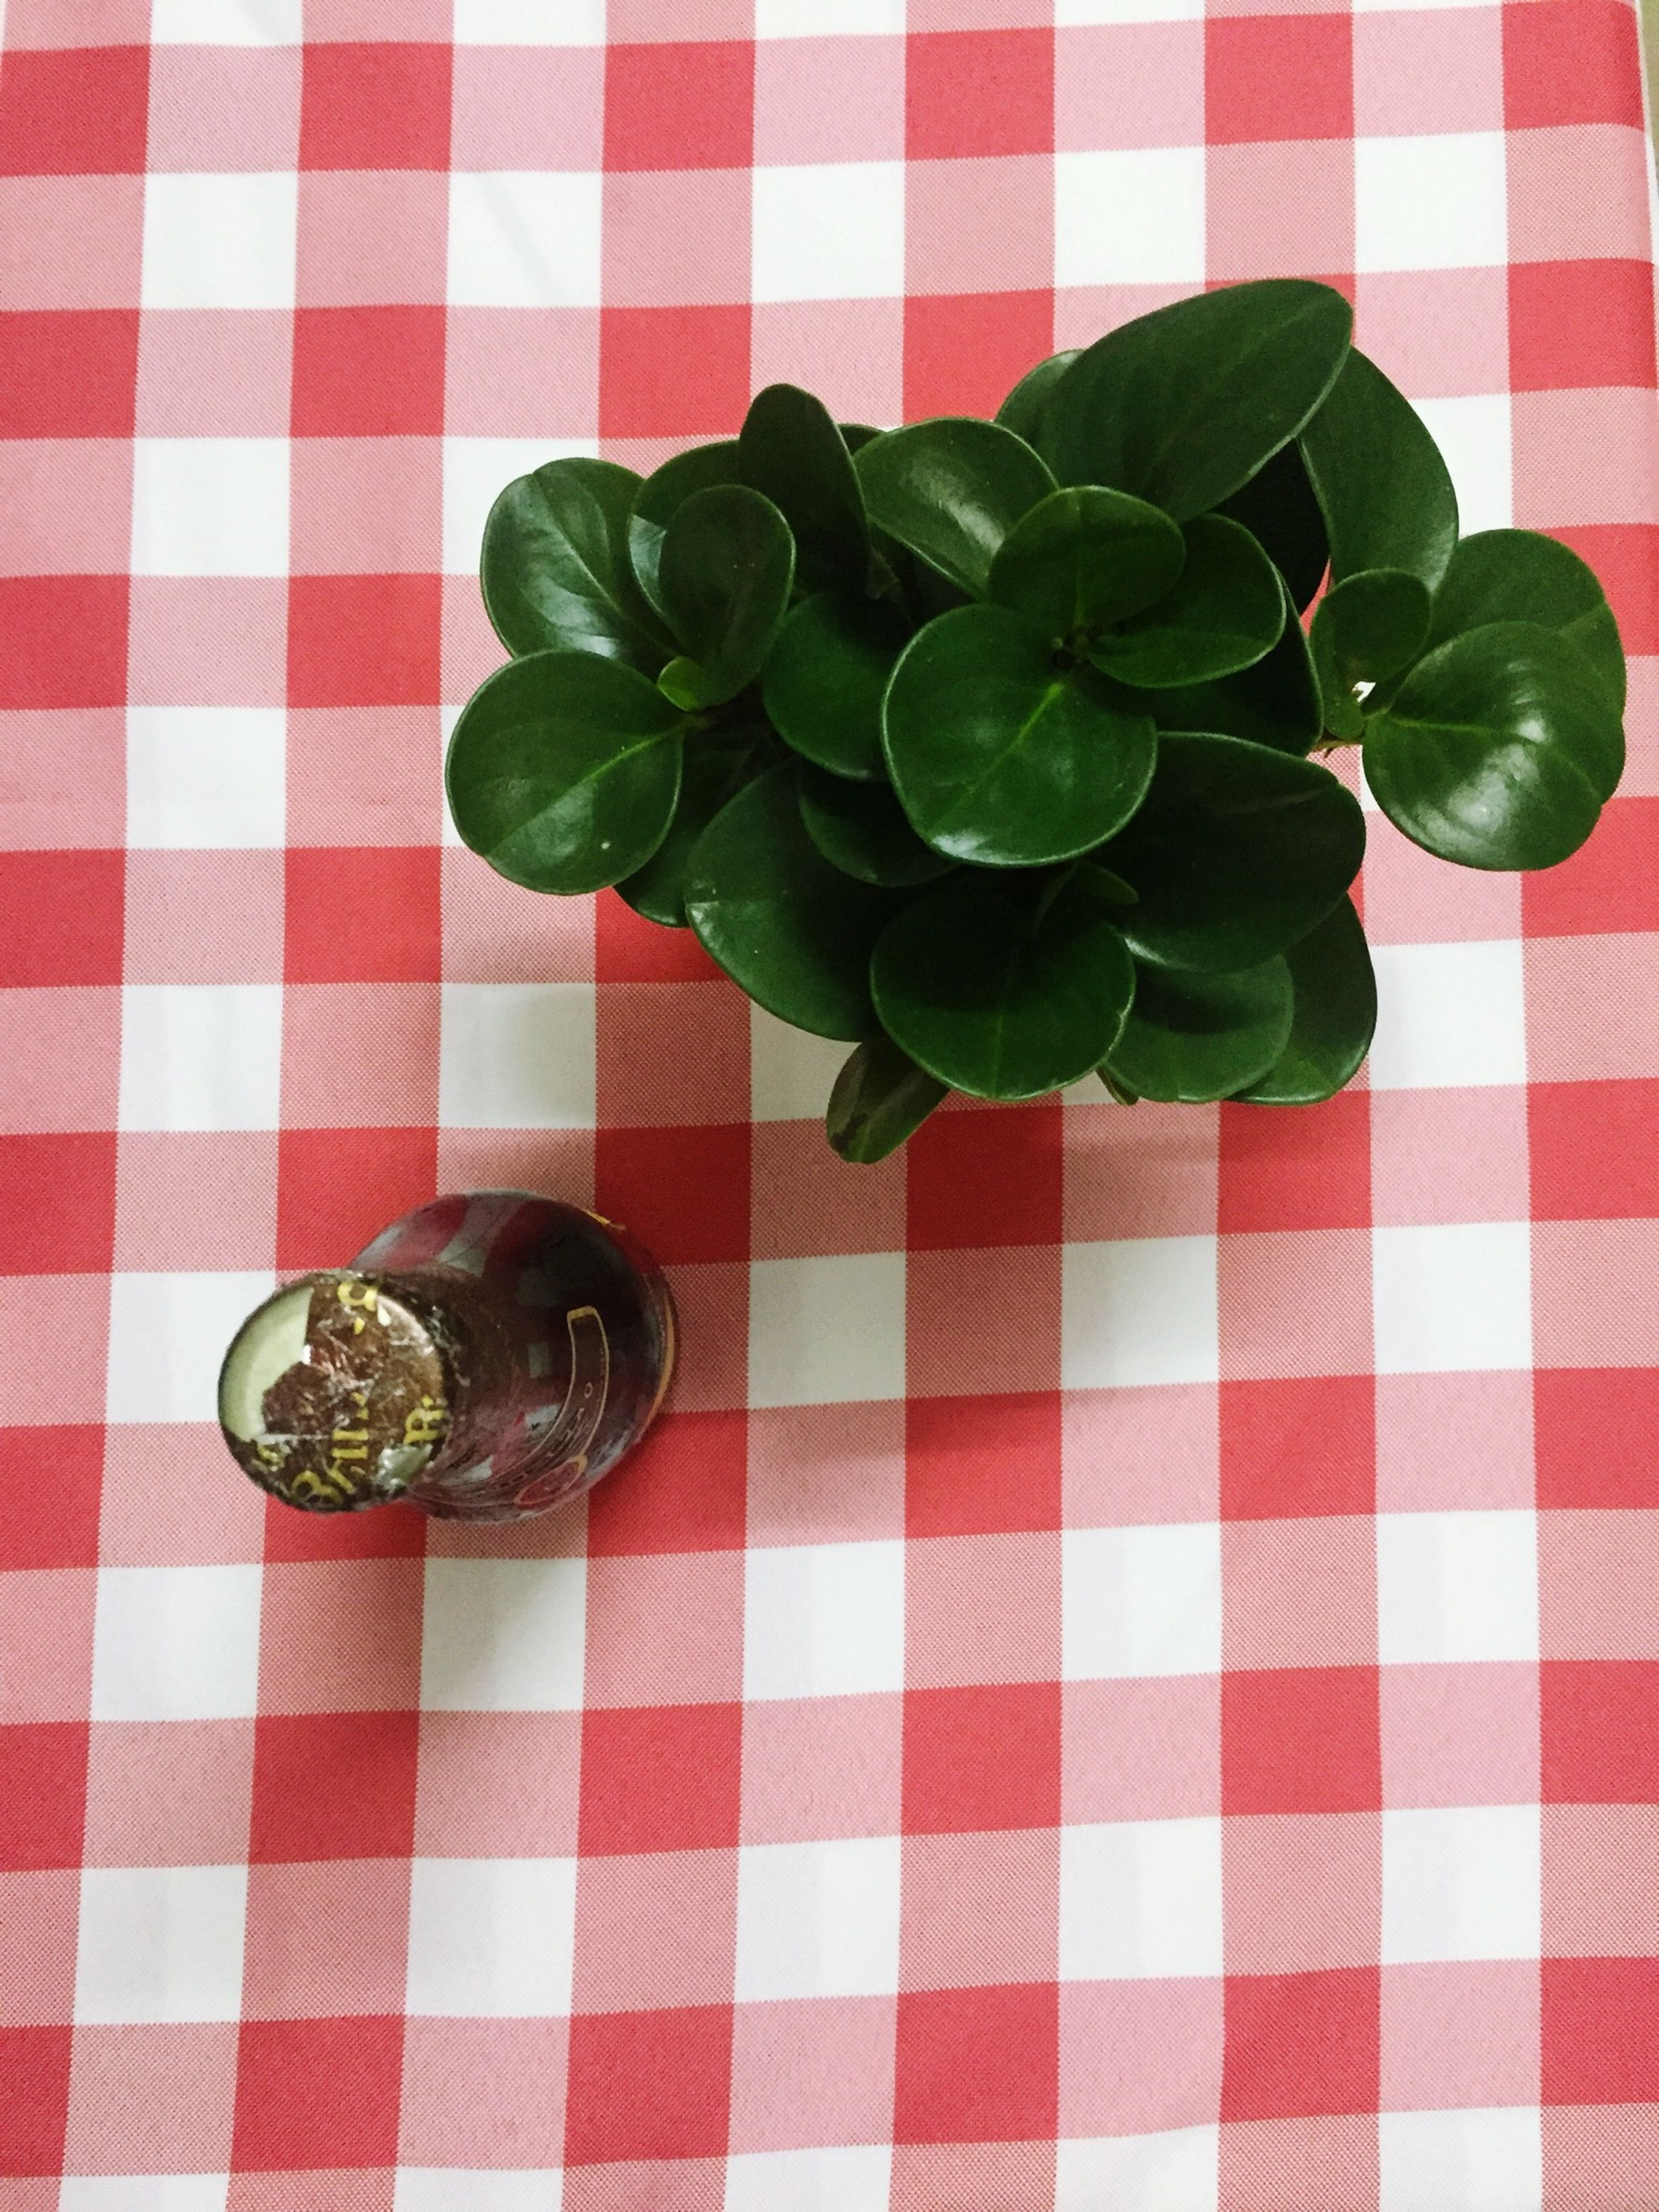 red, indoors, table, leaf, food and drink, high angle view, still life, freshness, close-up, tablecloth, green color, directly above, healthy eating, potted plant, no people, strawberry, fruit, food, plant, pattern